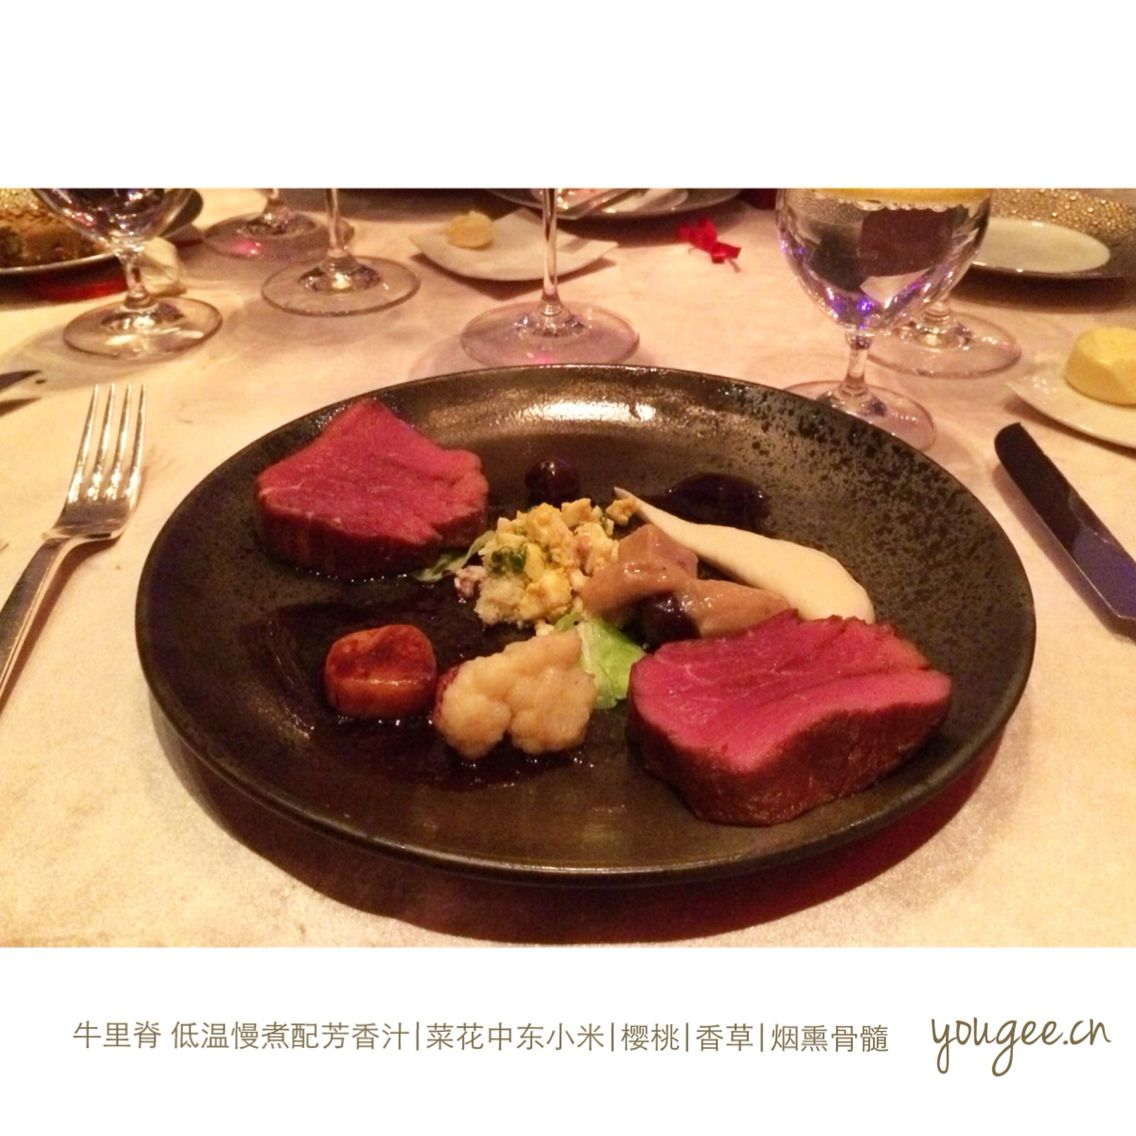 Chef de cuisine at Grill 79 China World Summit Wing